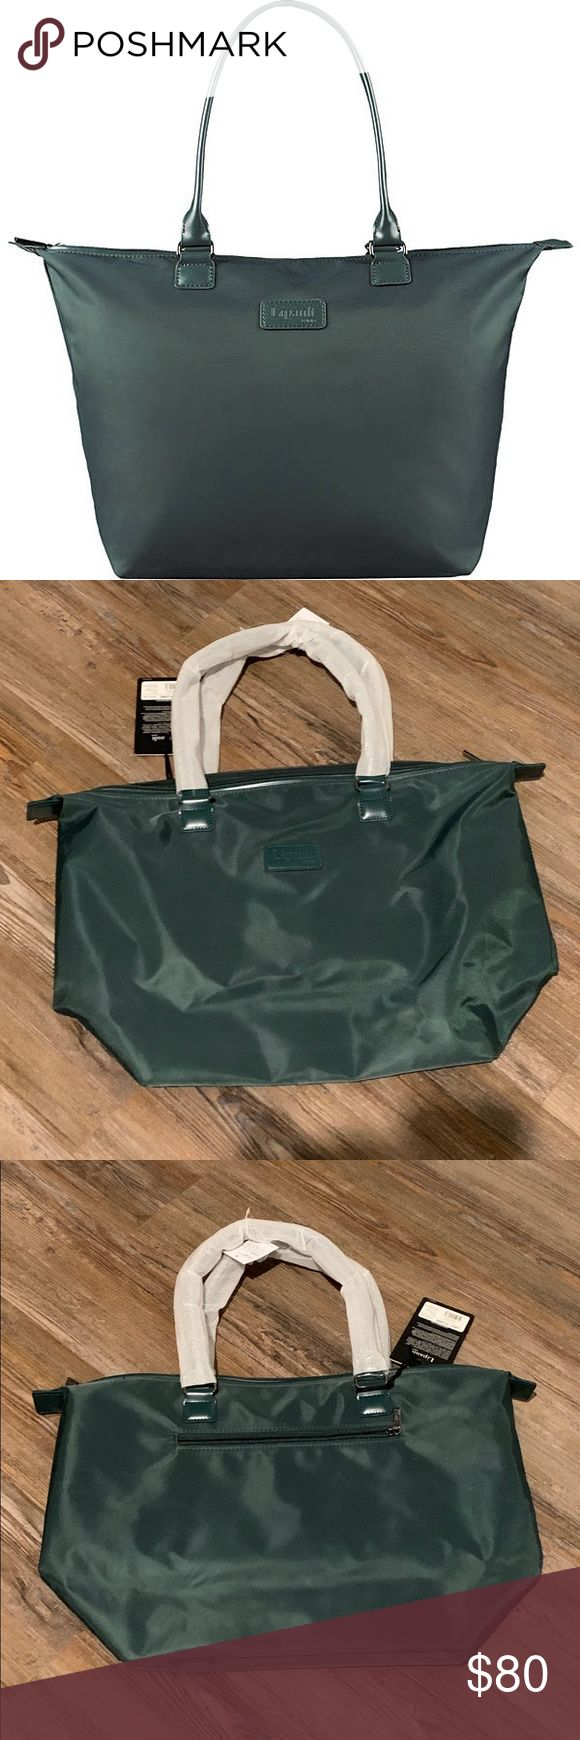 NWT Lipault Lady Plume Tote Bag in Forest Green Perfectly designed for everyday …